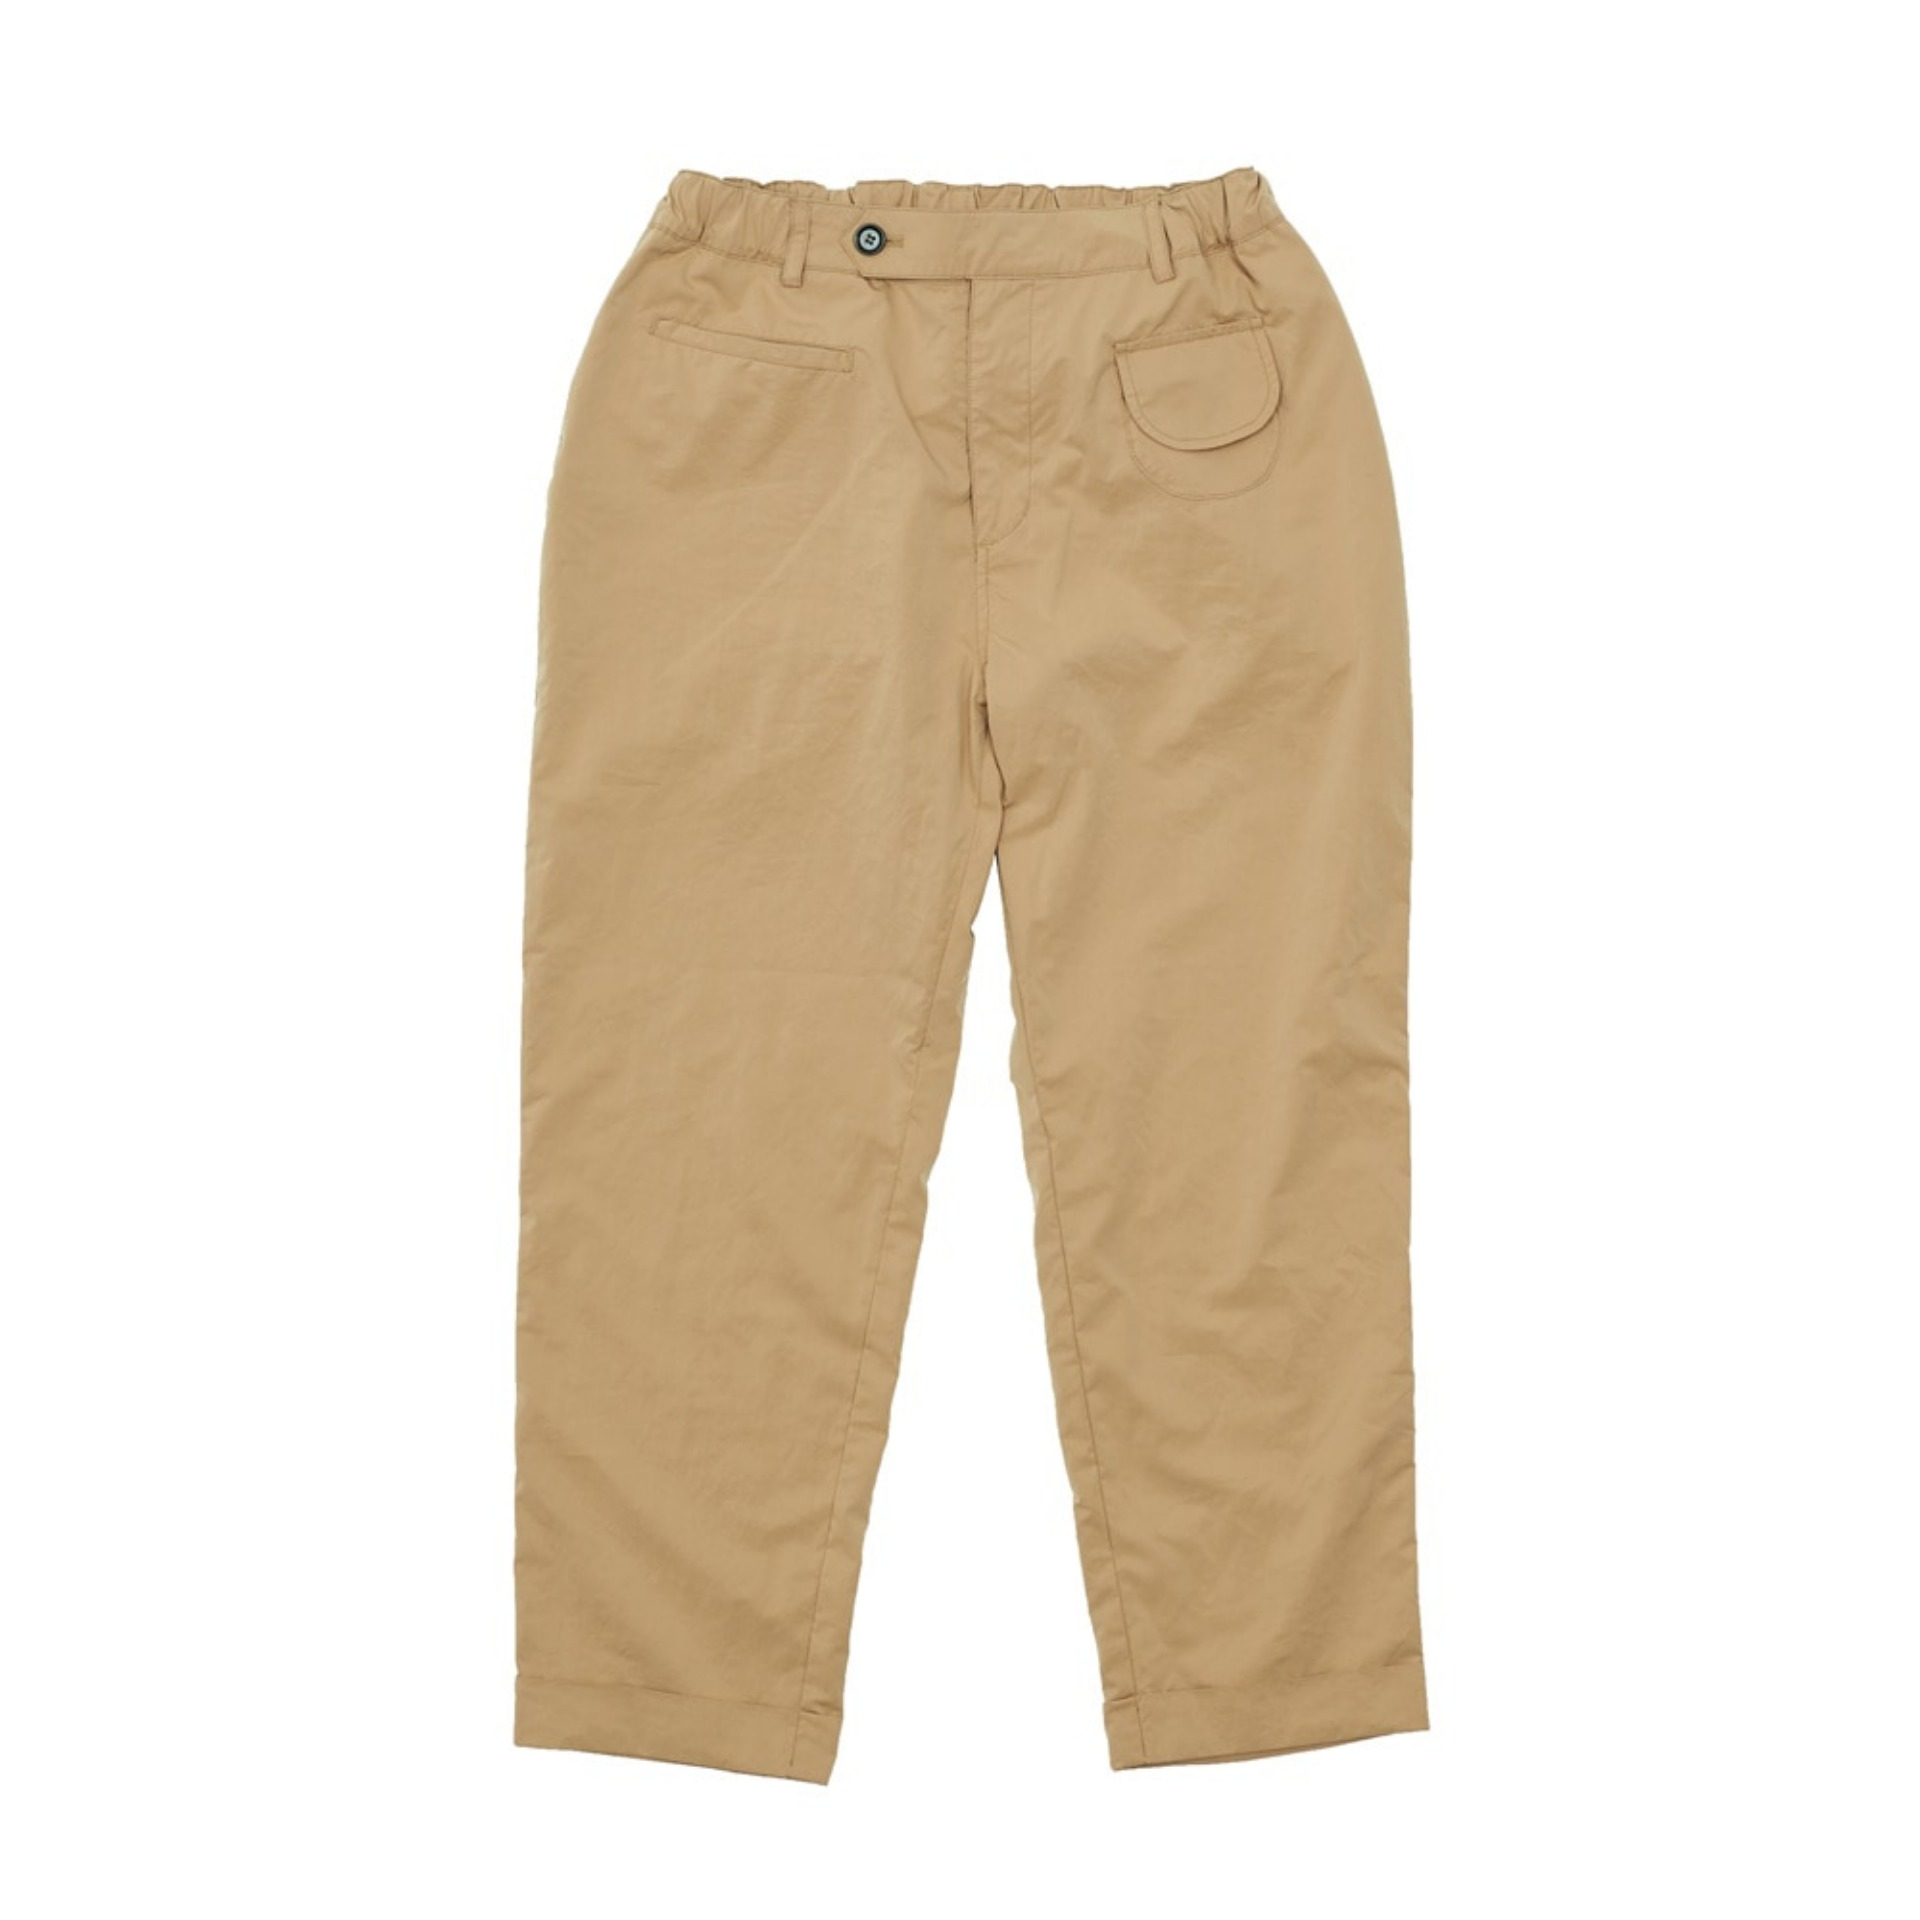 ALL WEATHER PANTS (BEIGE)